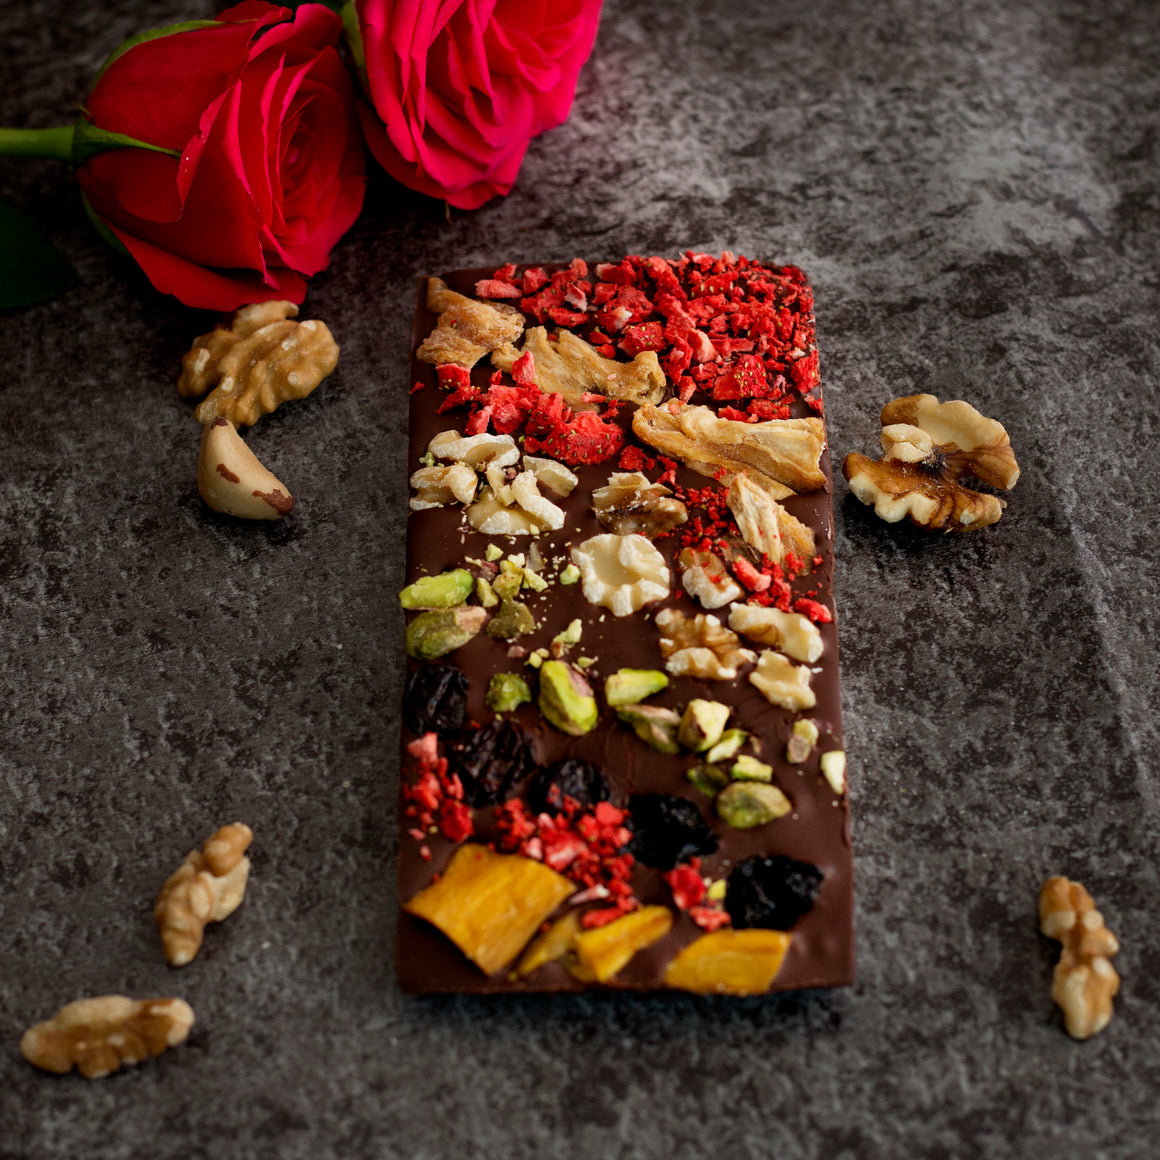 Bloom Delight healthy superfood chocolate bar with dried fruits and nuts.